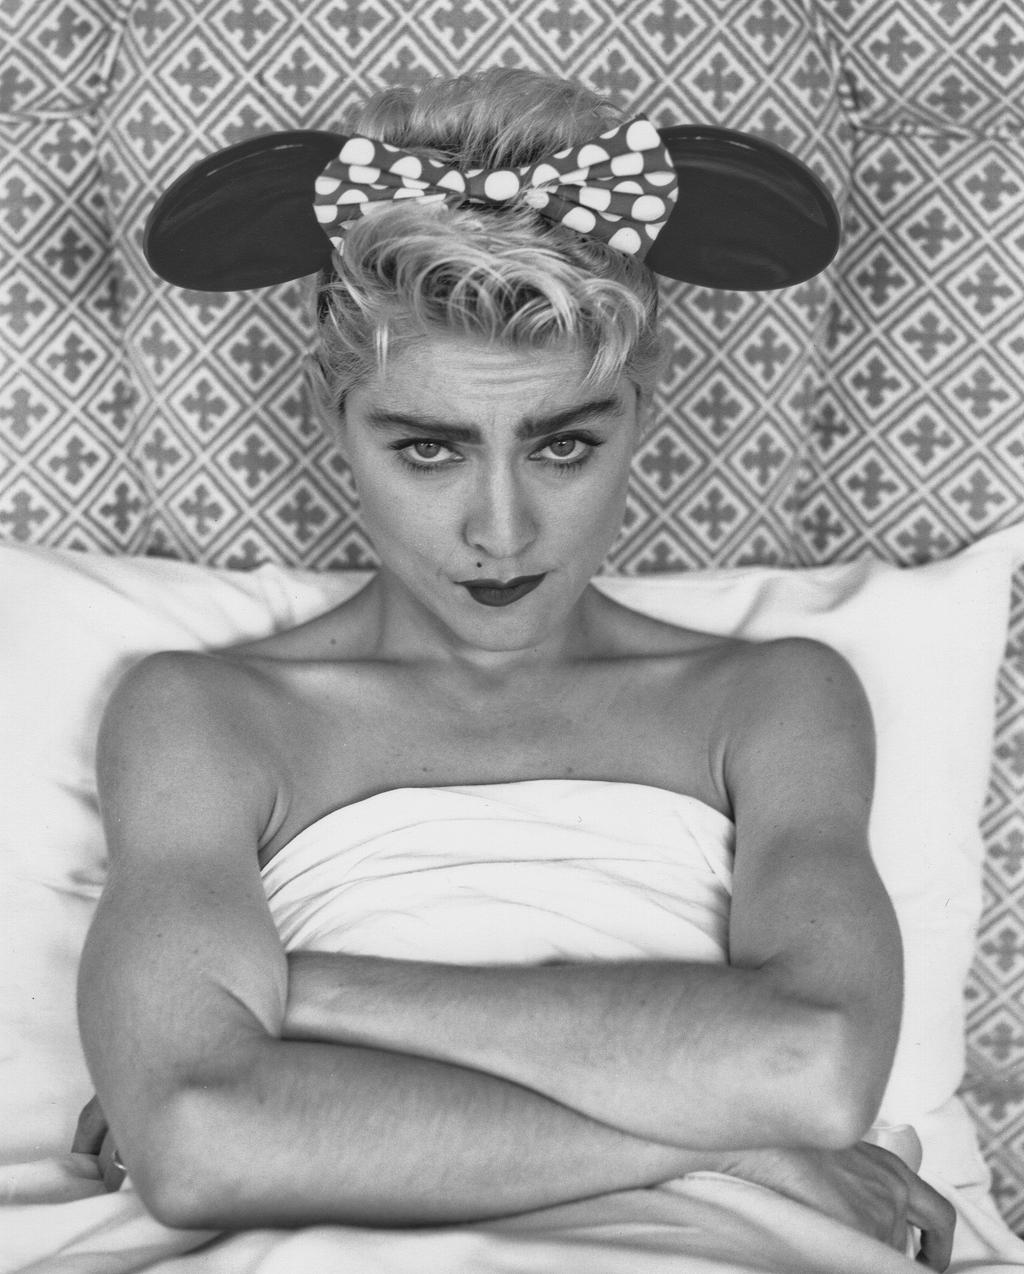 madonna_80s_mouse_by_confessiononmdna-d8